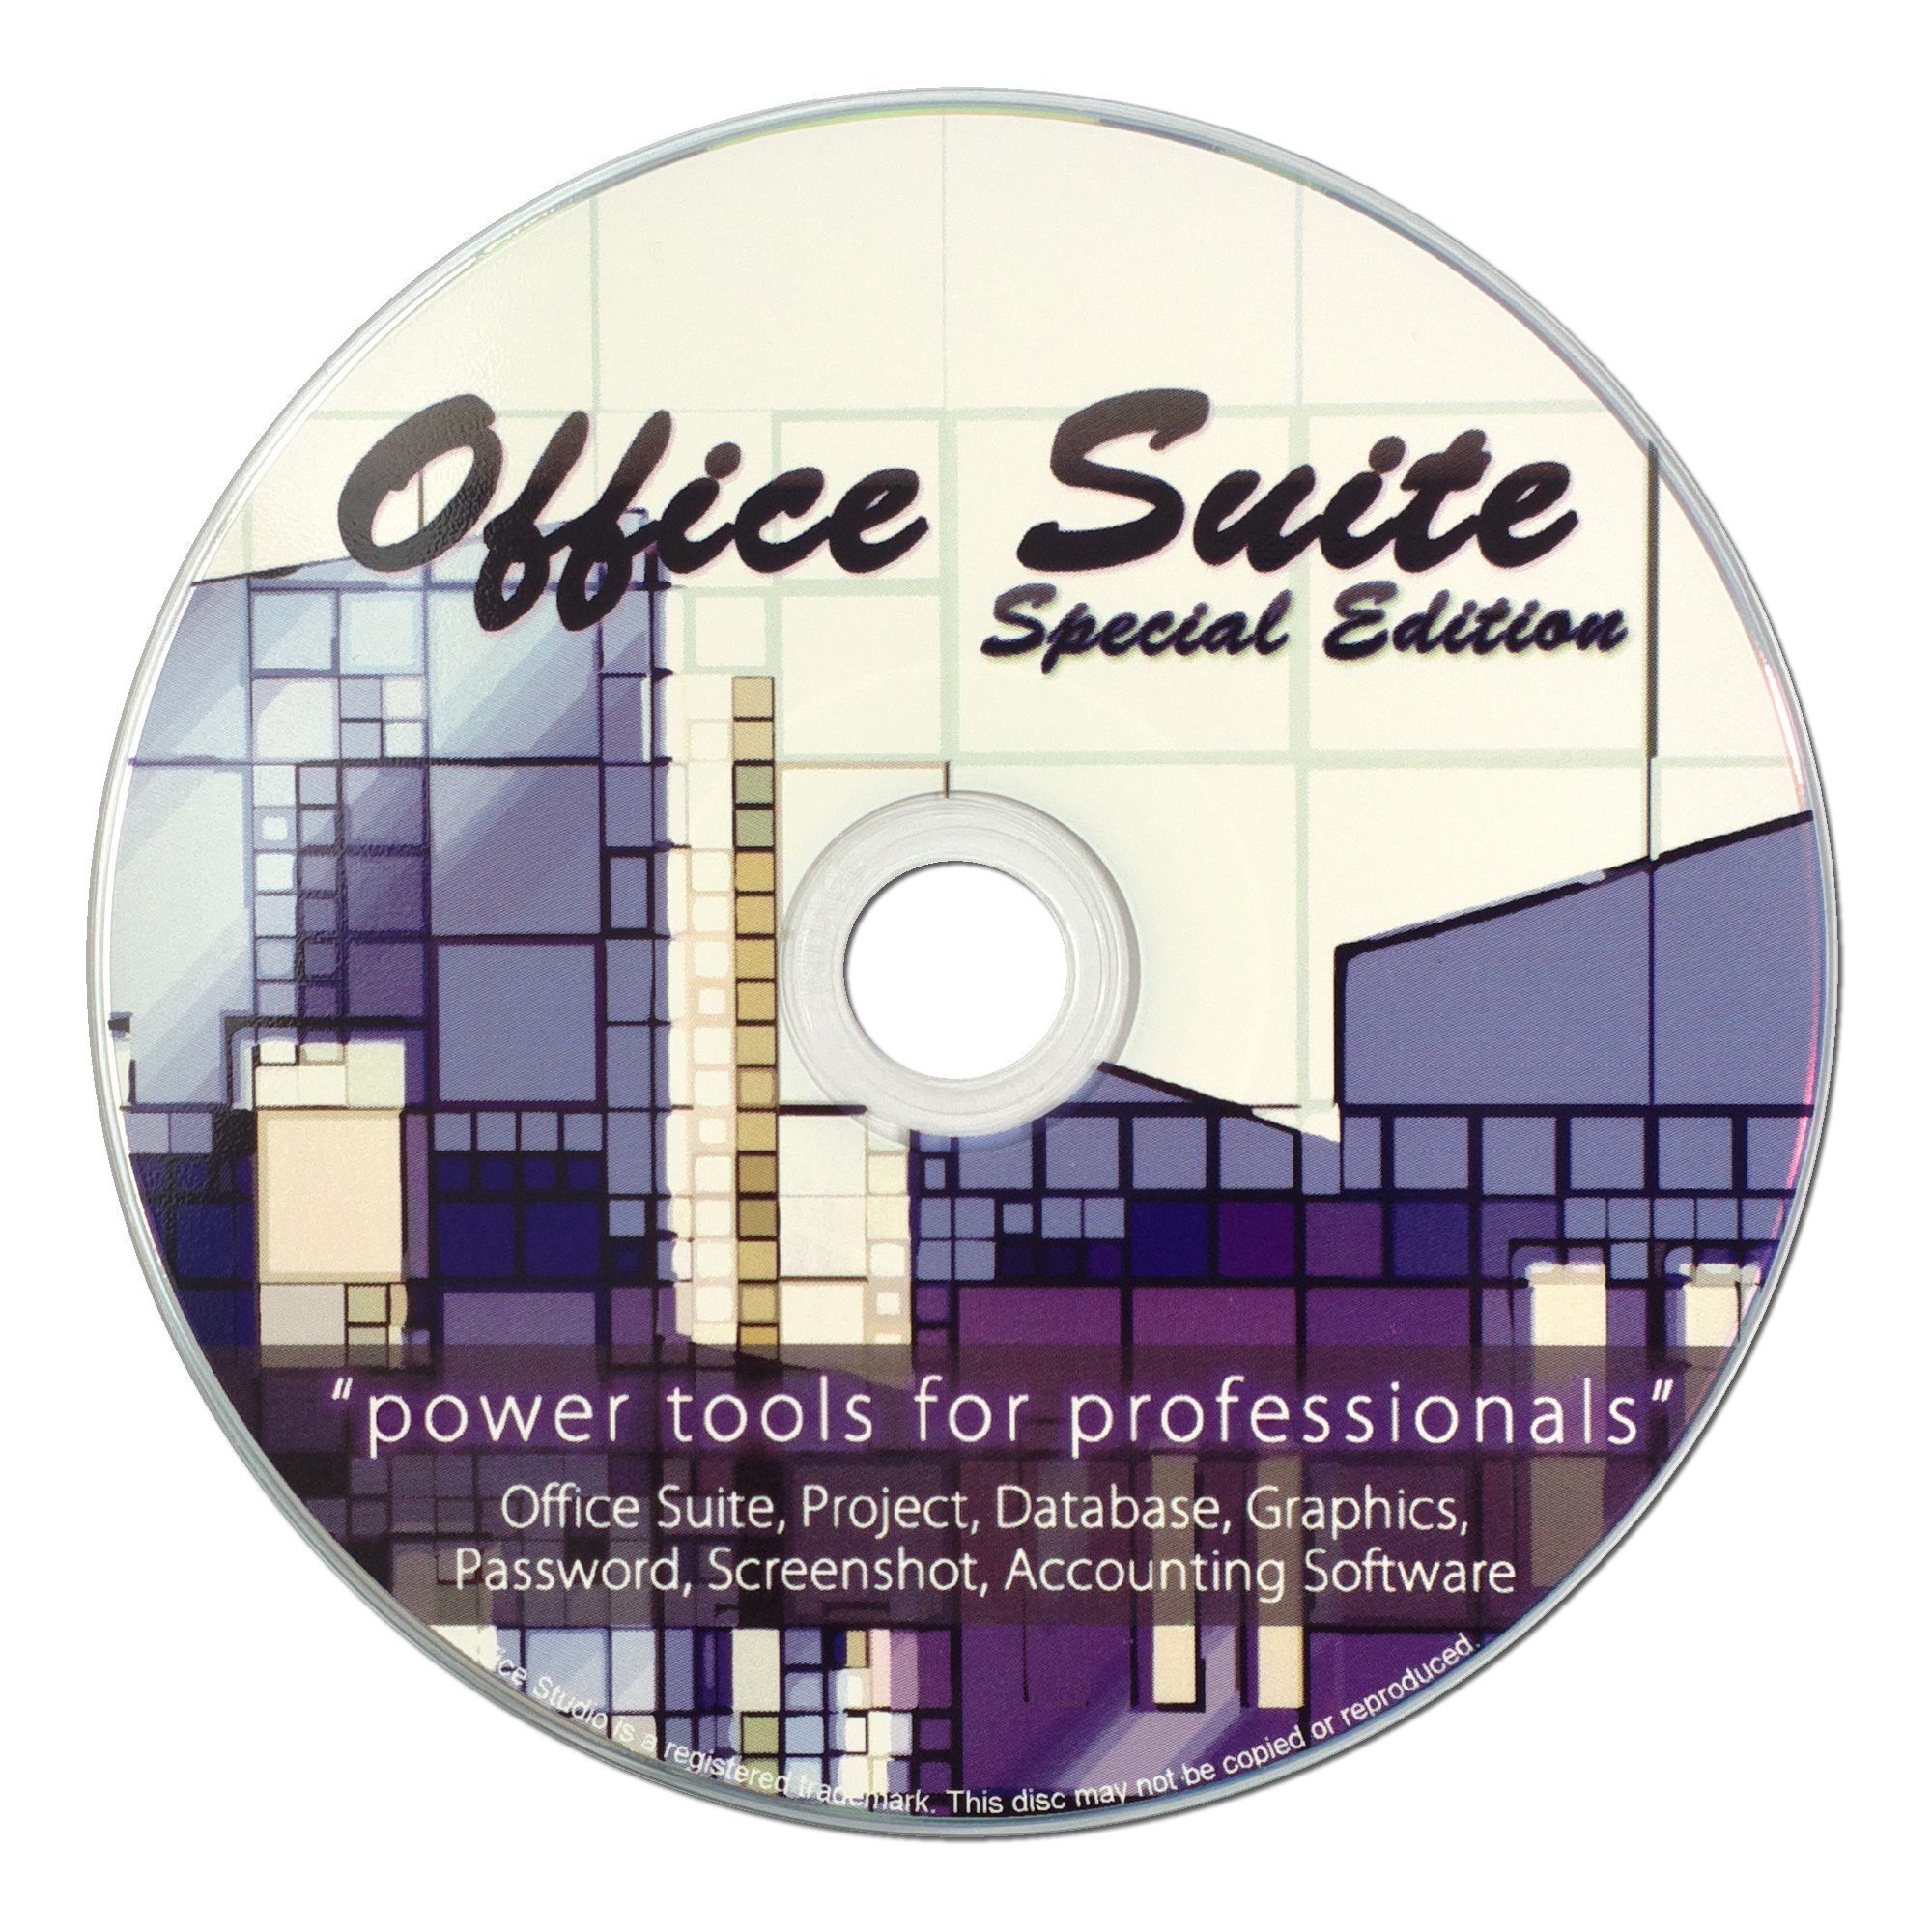 Office Suite Special Edition CD - Compatible with ALL Microsoft Office -Use at Home or Business for Students to Professionals - Runs on Windows 10, 8, 7, Vista and XP by Office Suite Special Edition